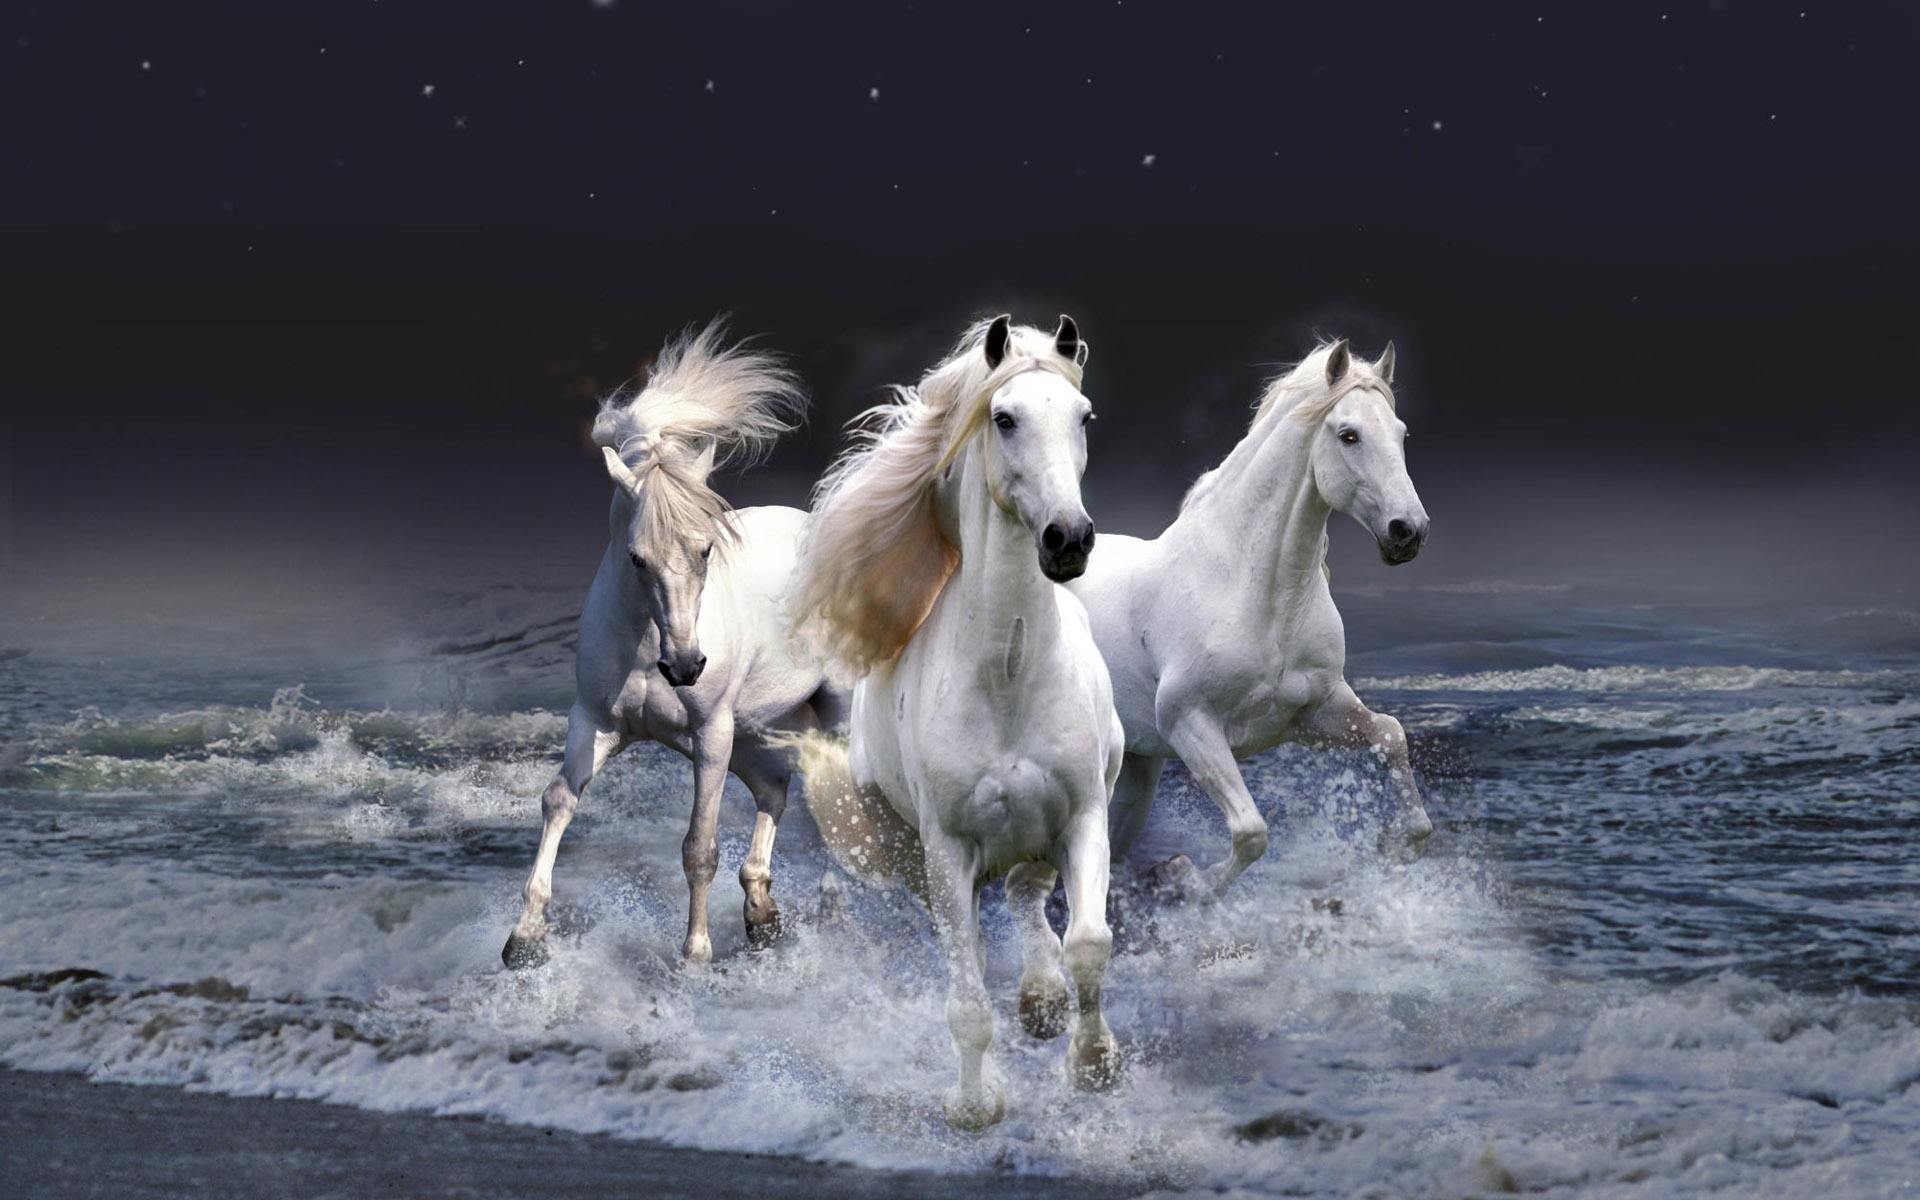 30368 download wallpaper Horses, Animals screensavers and pictures for free